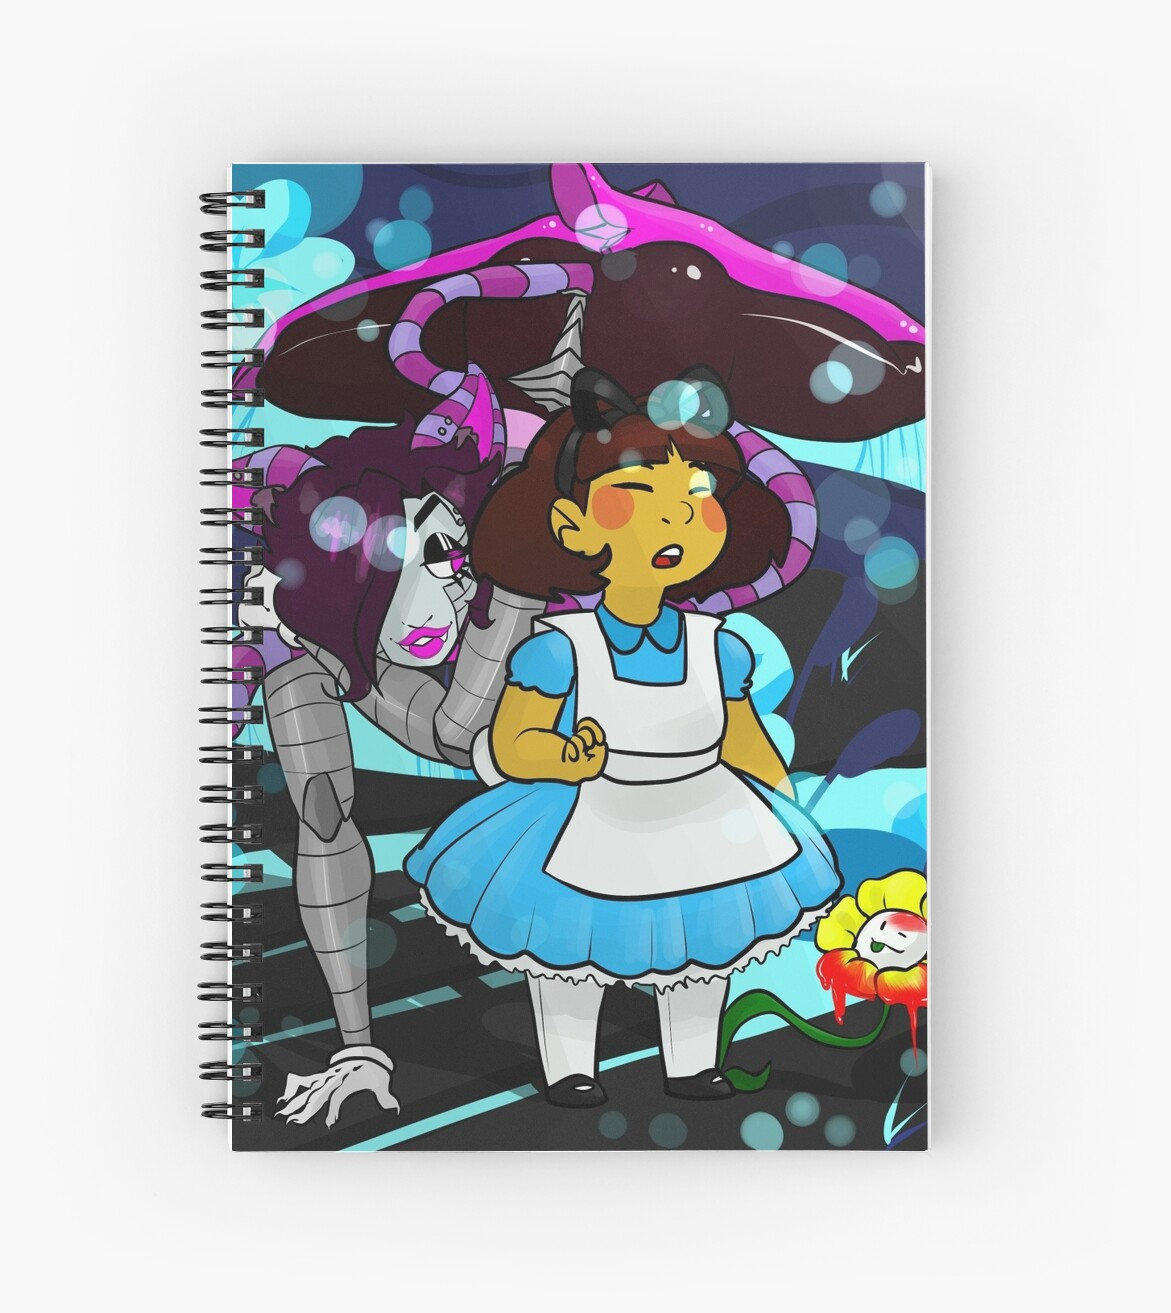 Undertale - Frisk in Wonderland by bailey1rox